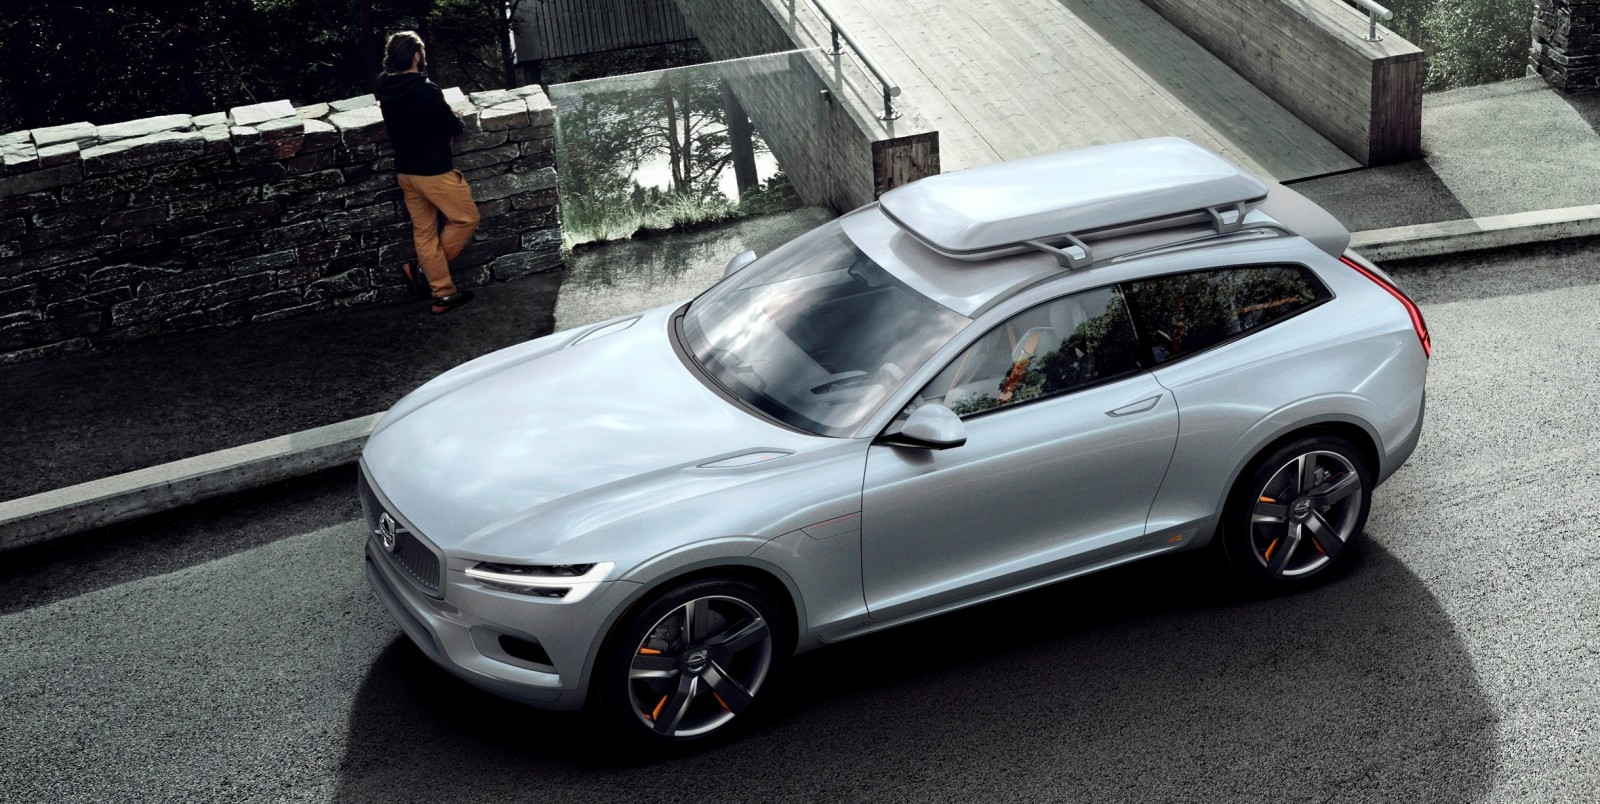 2015 volvo xc90 closely previewed by new xc coupe concept for detroit car revs. Black Bedroom Furniture Sets. Home Design Ideas